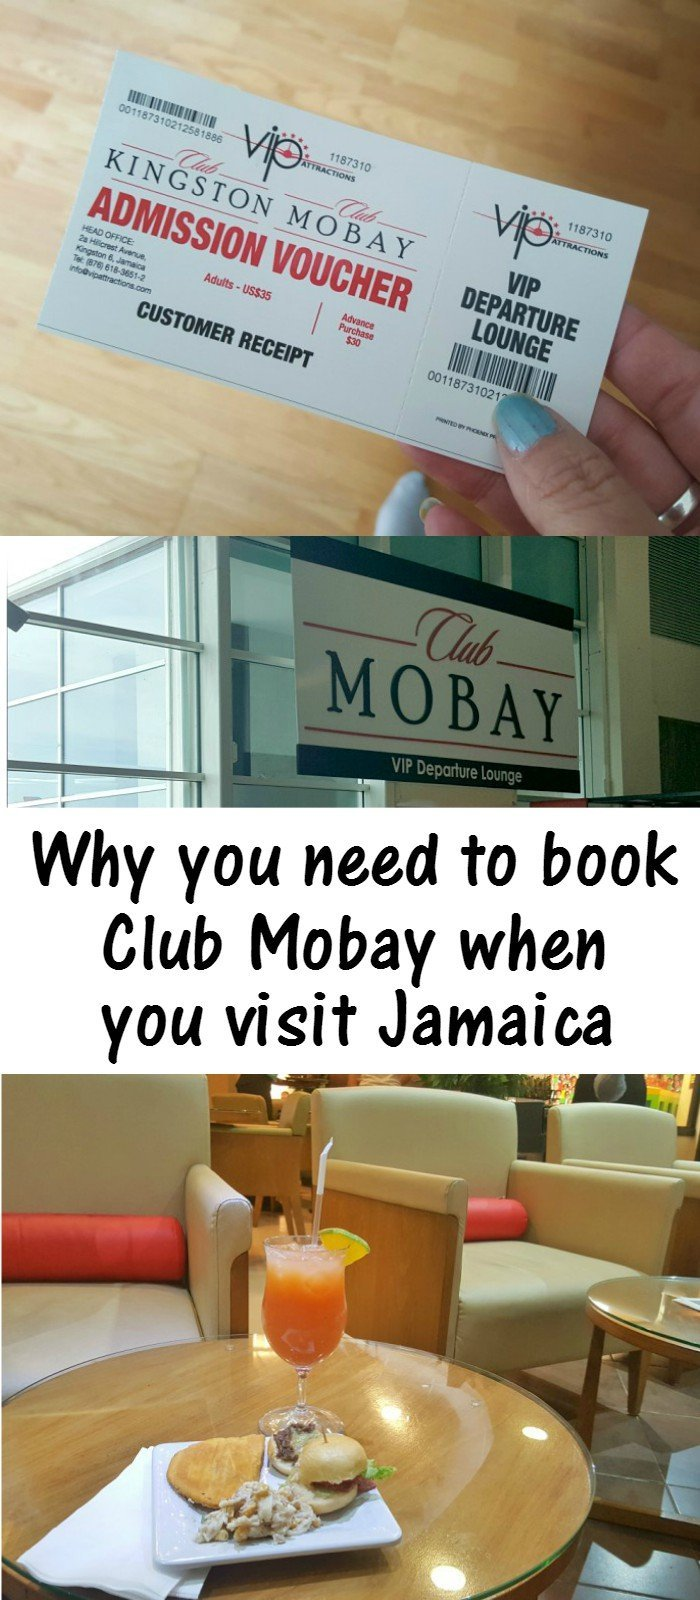 Reasons to book Club Mobay when you fly to Jamaica, This personalized service is first class all the way and makes your travel so much easier. Check out what to expect and why you need to use this service as you travel to Montego Bay